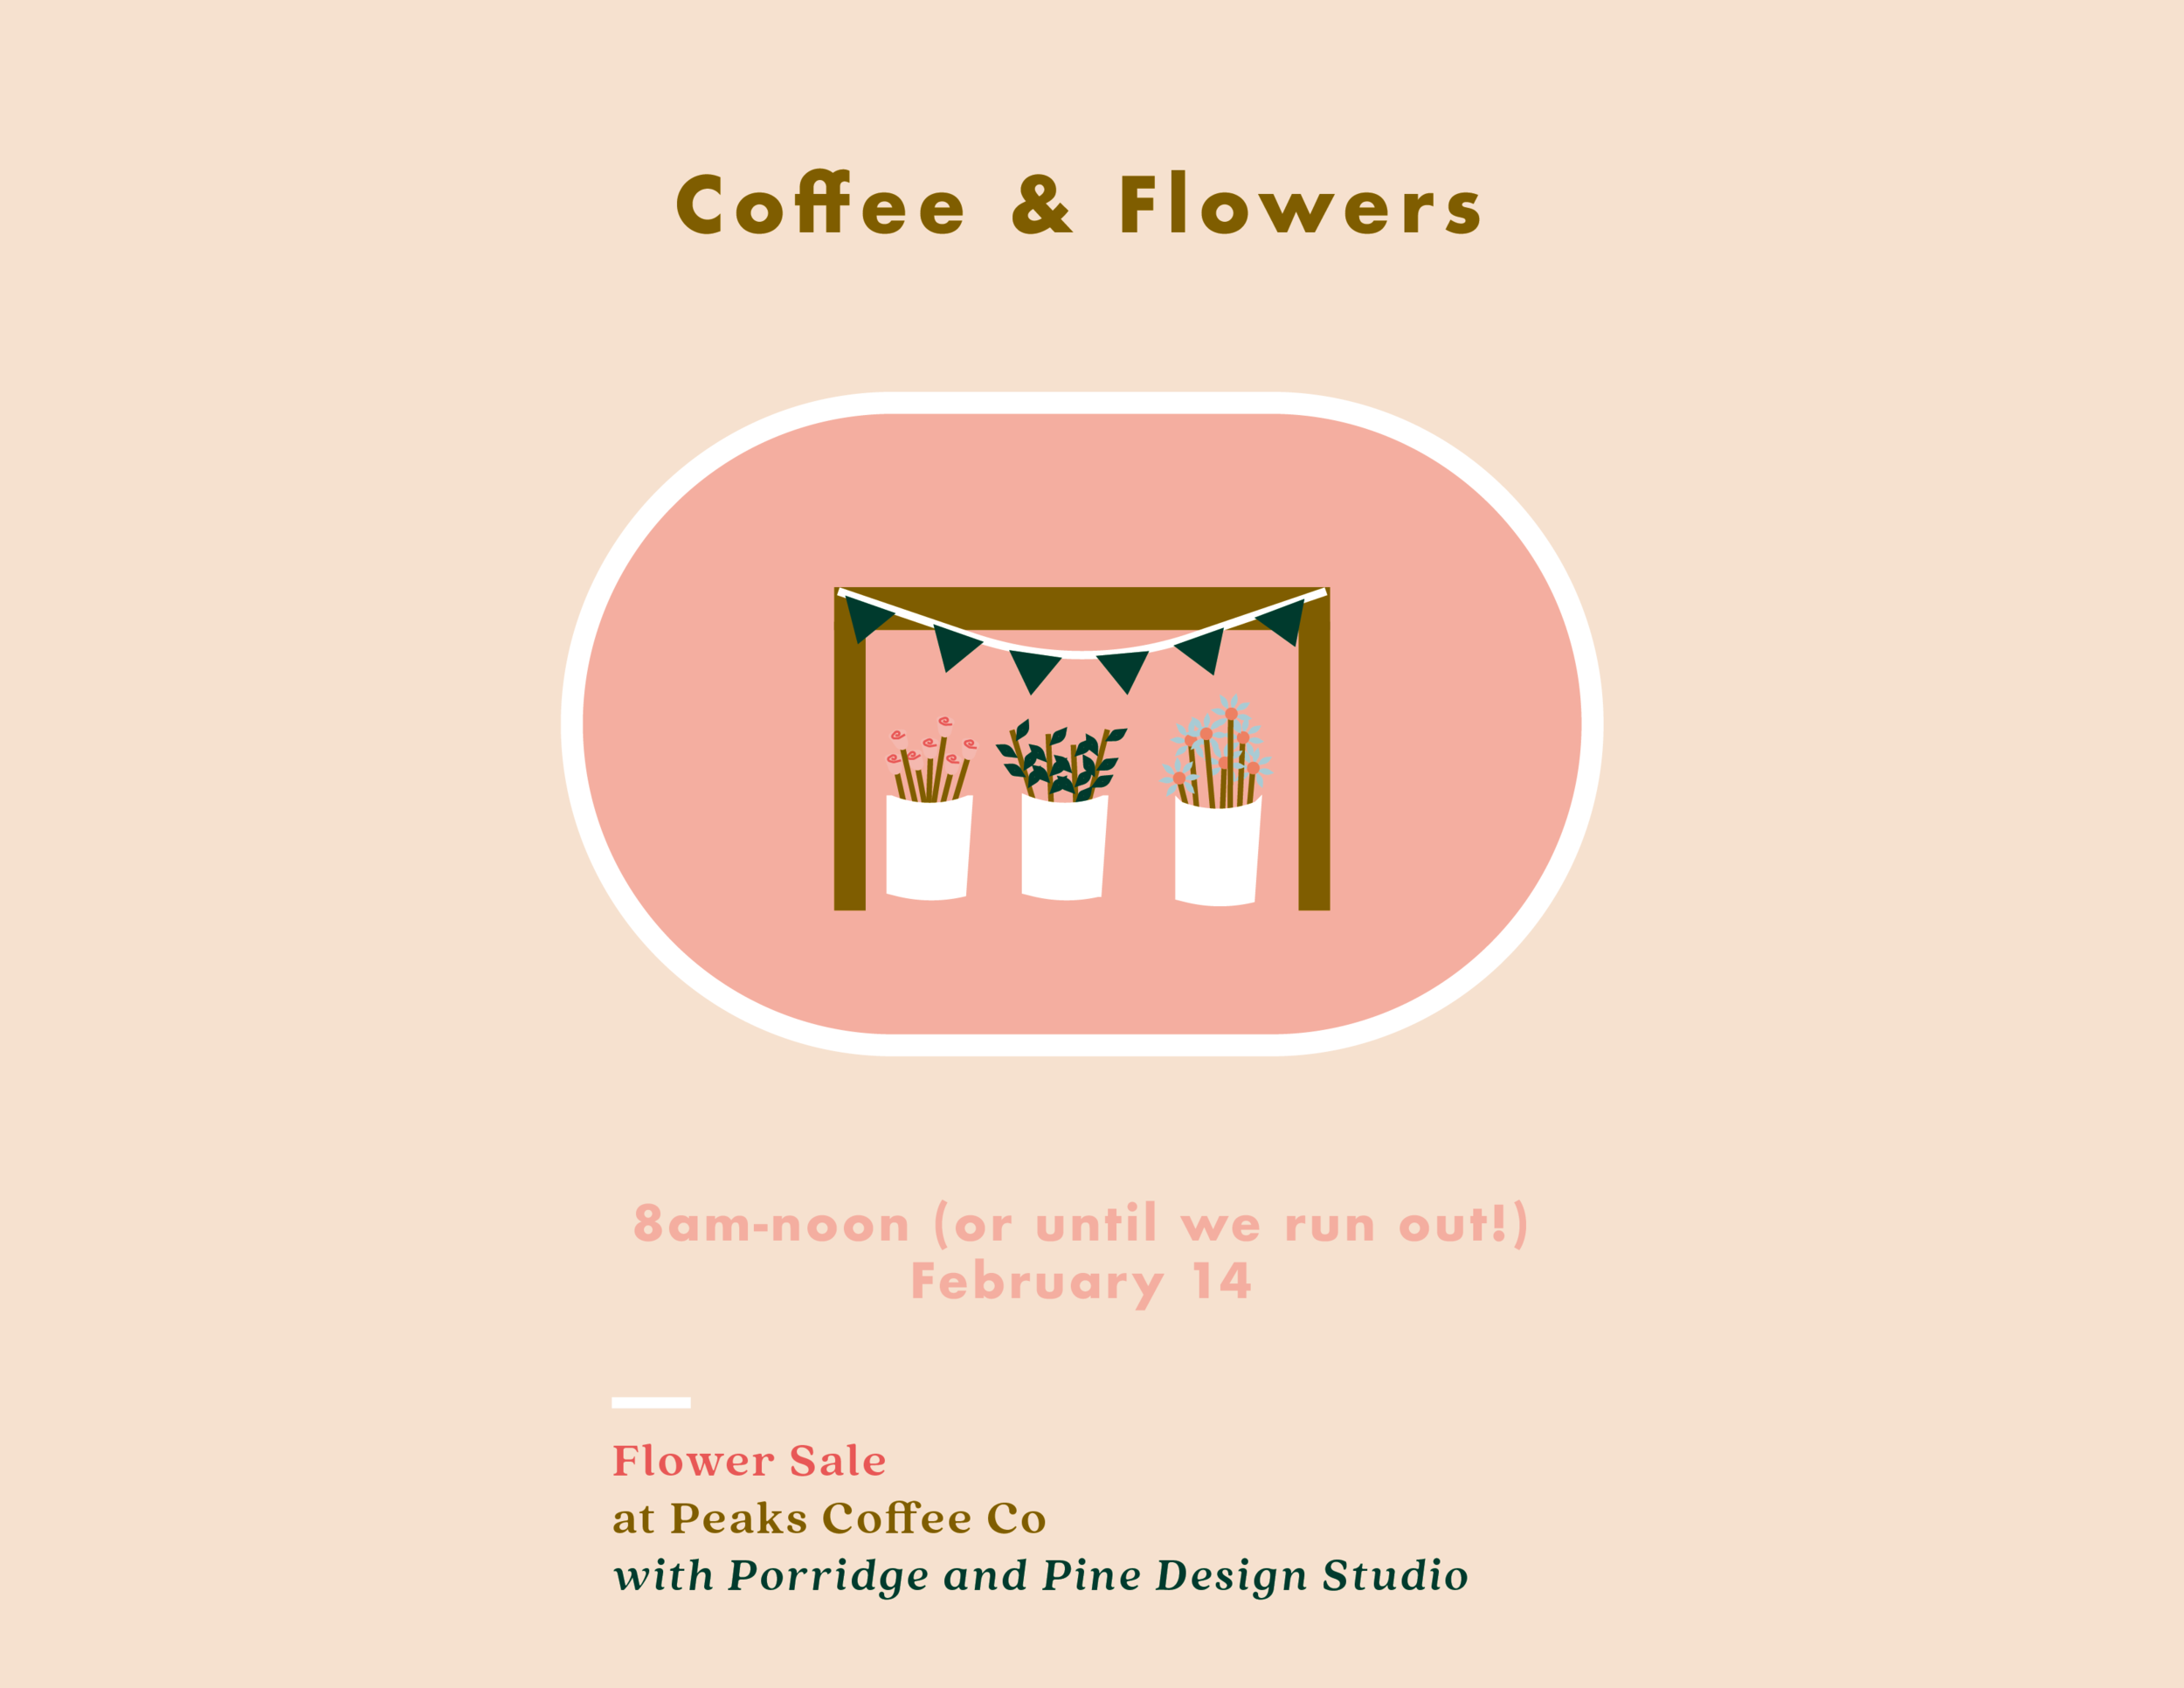 coffeeandflowerseventgraphic.png